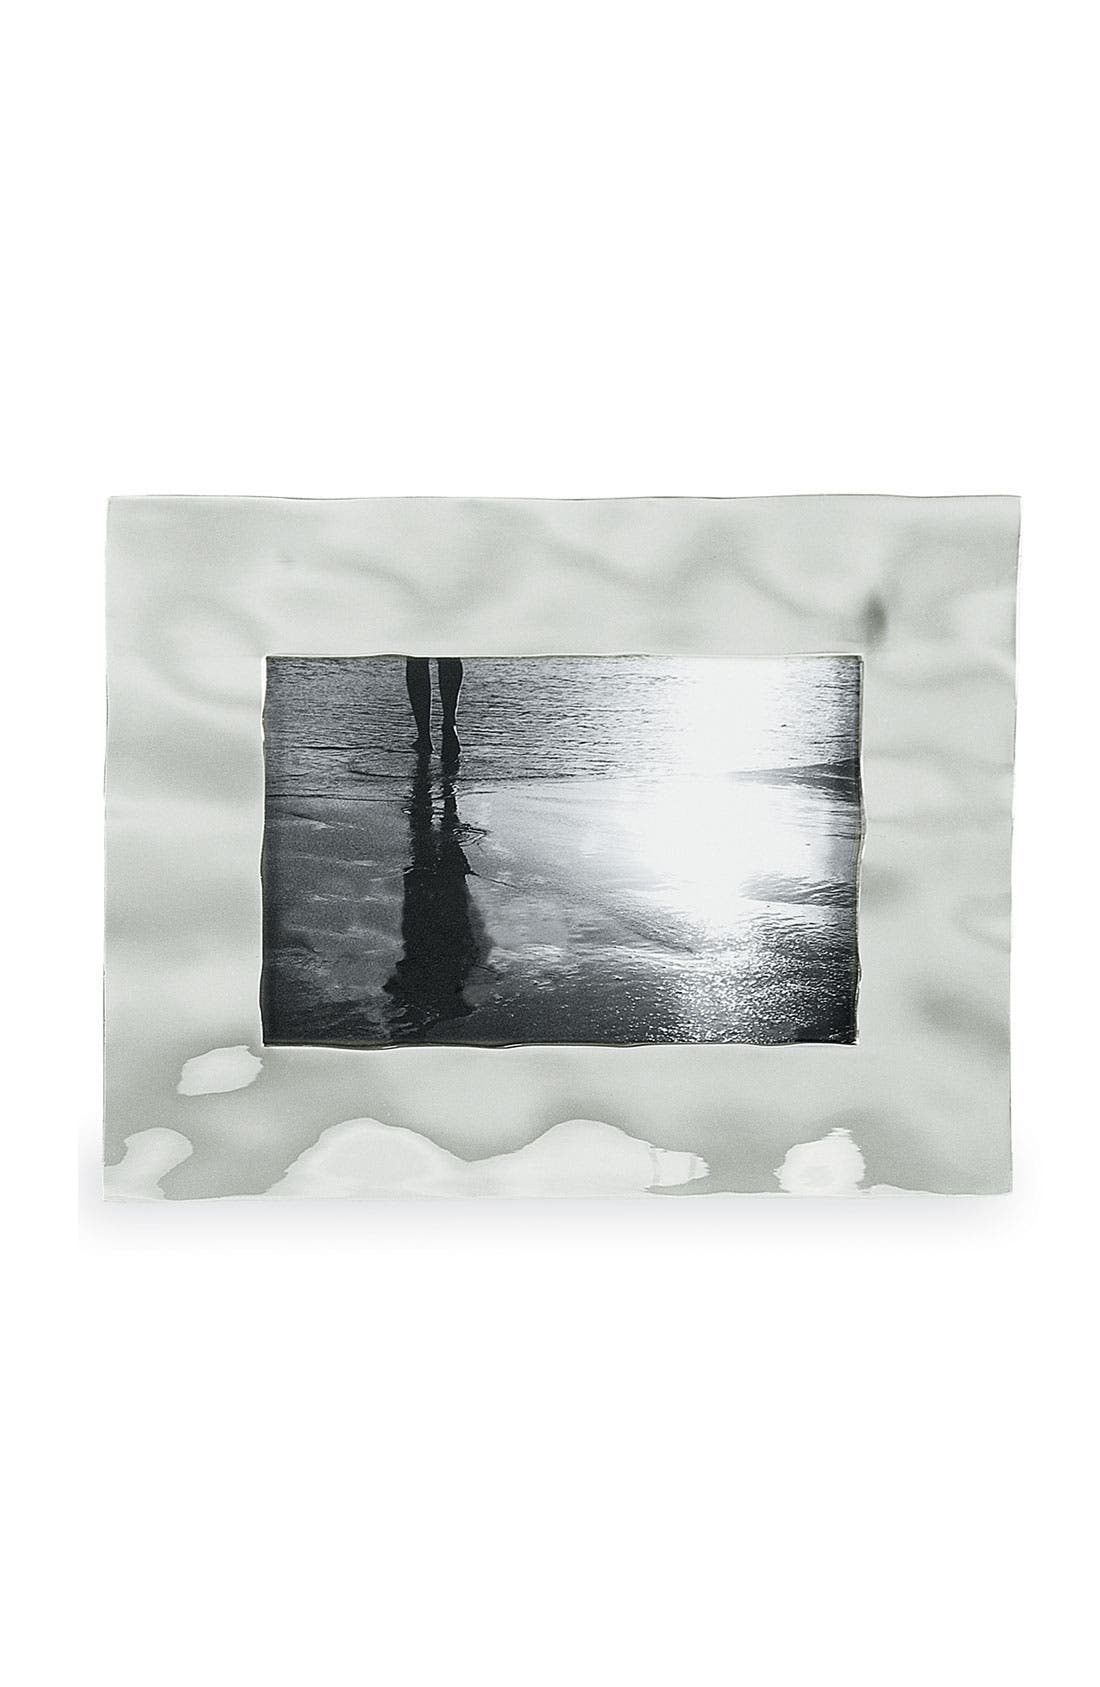 Alternate Image 1 Selected - Michael Aram 'Reflective Water' Picture Frame (4x6)